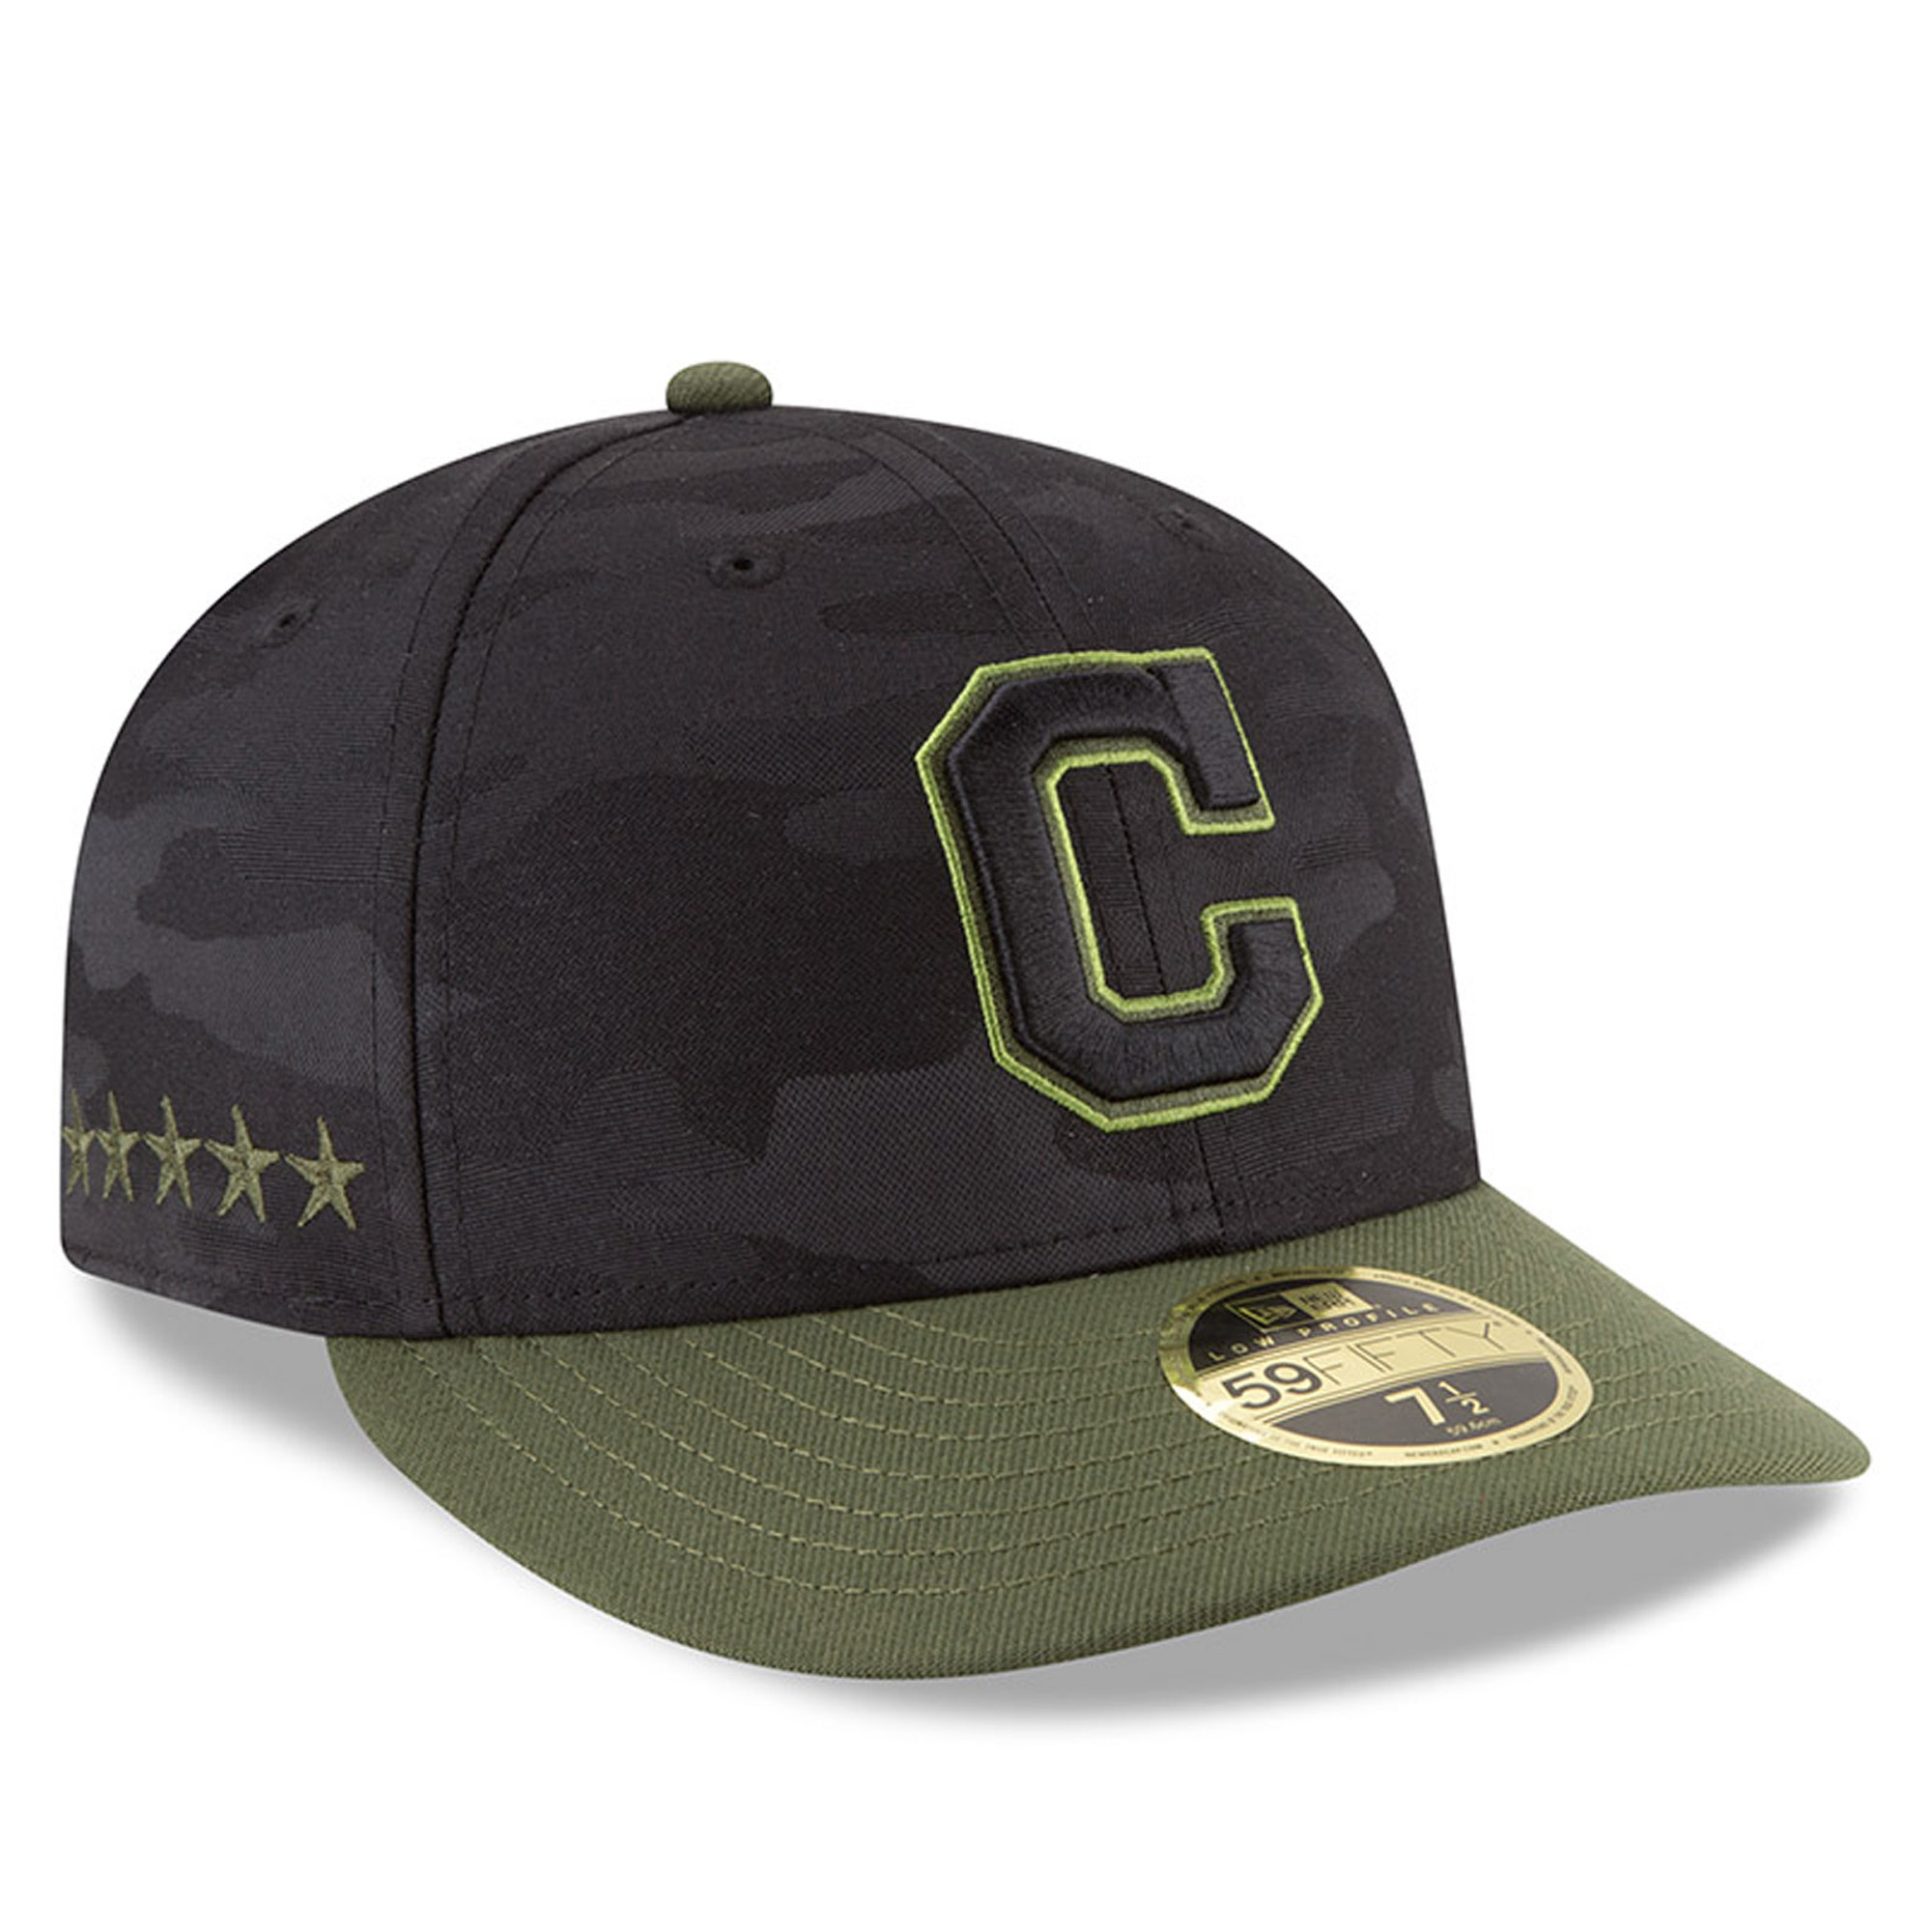 Cleveland Indians New Era 2018 Memorial Day On-Field Low Profile 59FIFTY Fitted Hat - Black